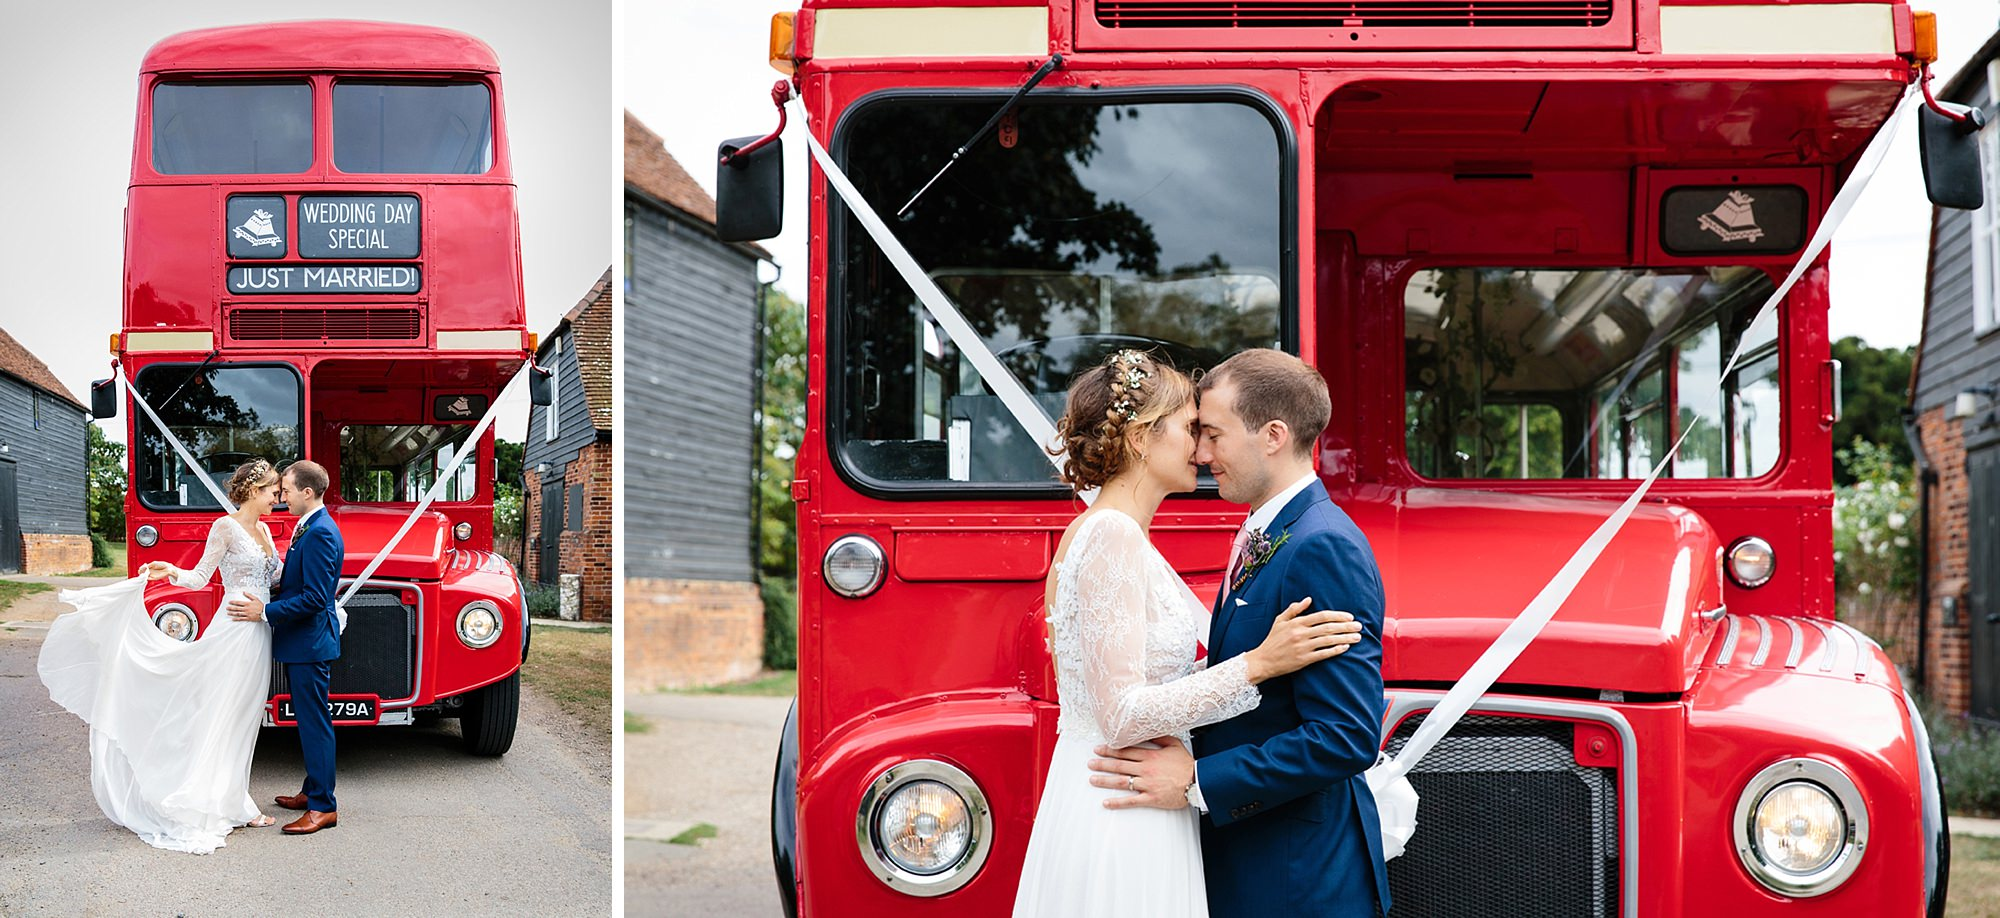 Marks Hall Estate wedding photography bride and groom with vintage london wedding bus